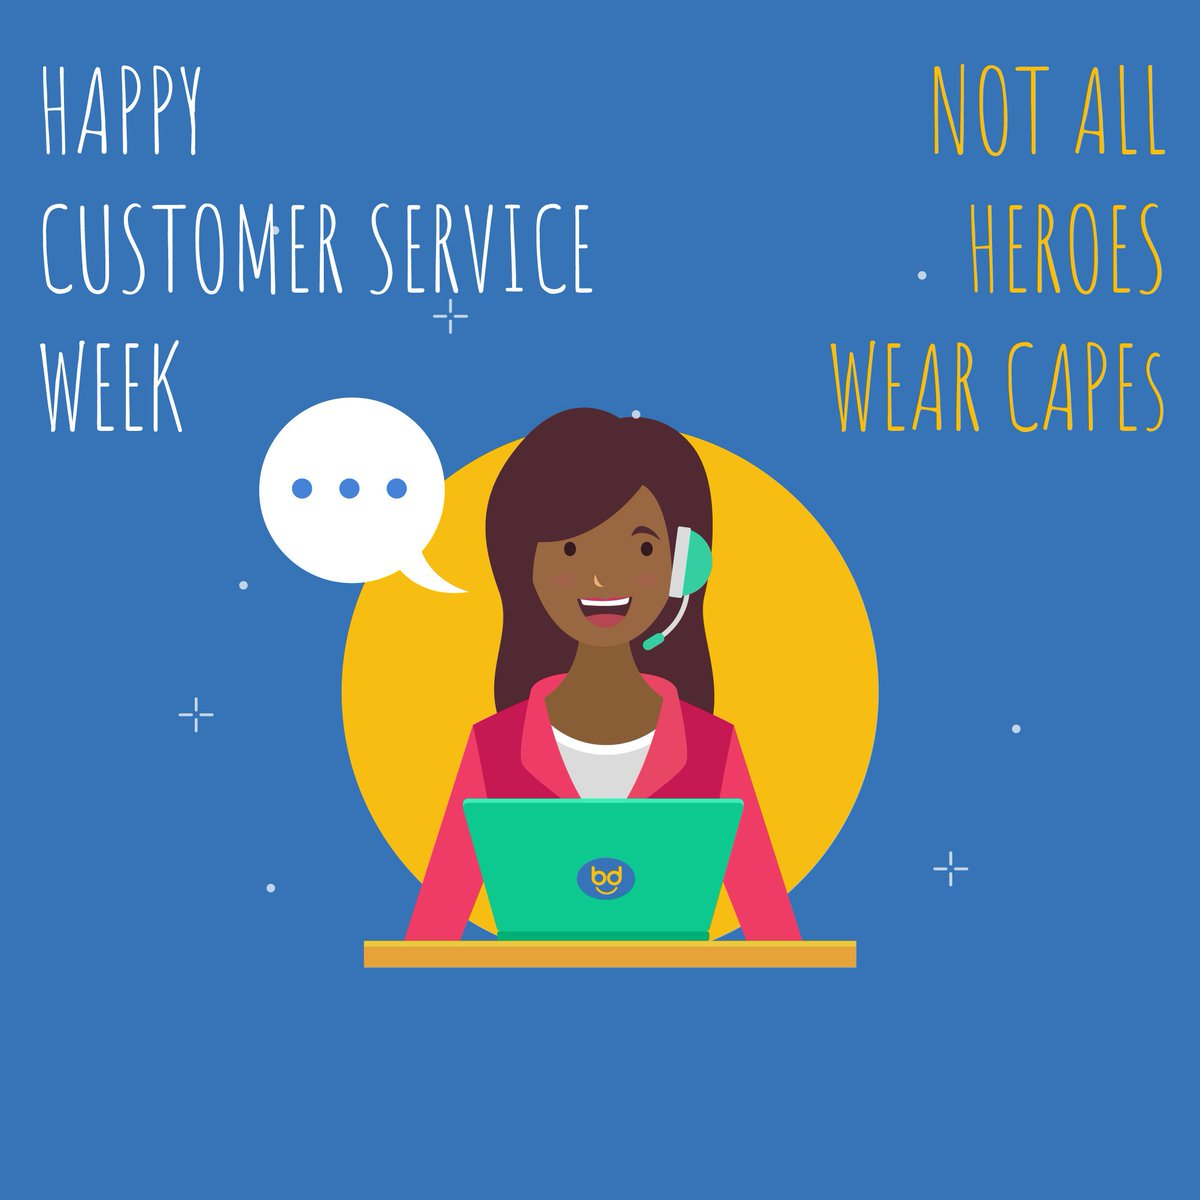 Happy customer service week, 💯💯💯🕺🏾🕺🏾🕺🏾 . Need Garment branding ? Dm now or call 07007000500 . #tshirtdesign #tshirtfactory #tshirtprinting #printshop #branding #garmentbranding #tshirt #shirt #clothing #tailoring #production #lagos #tshirtfactorynigeria #tshirtfactoryinlagos